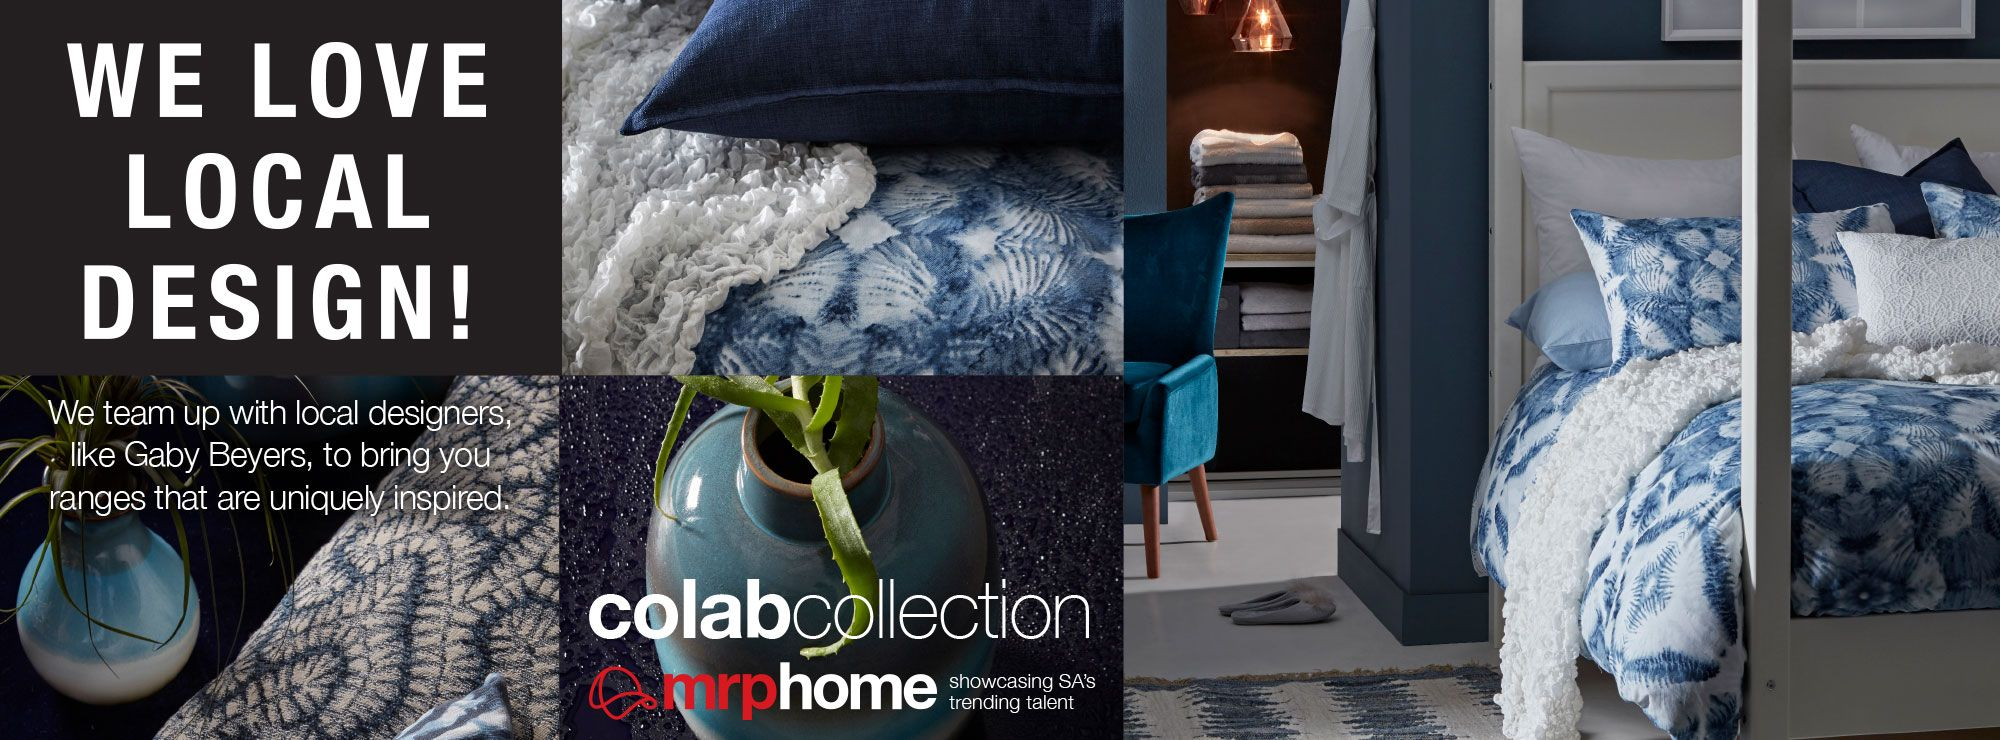 Colab Collection Get The Look Inspiration Shop Get